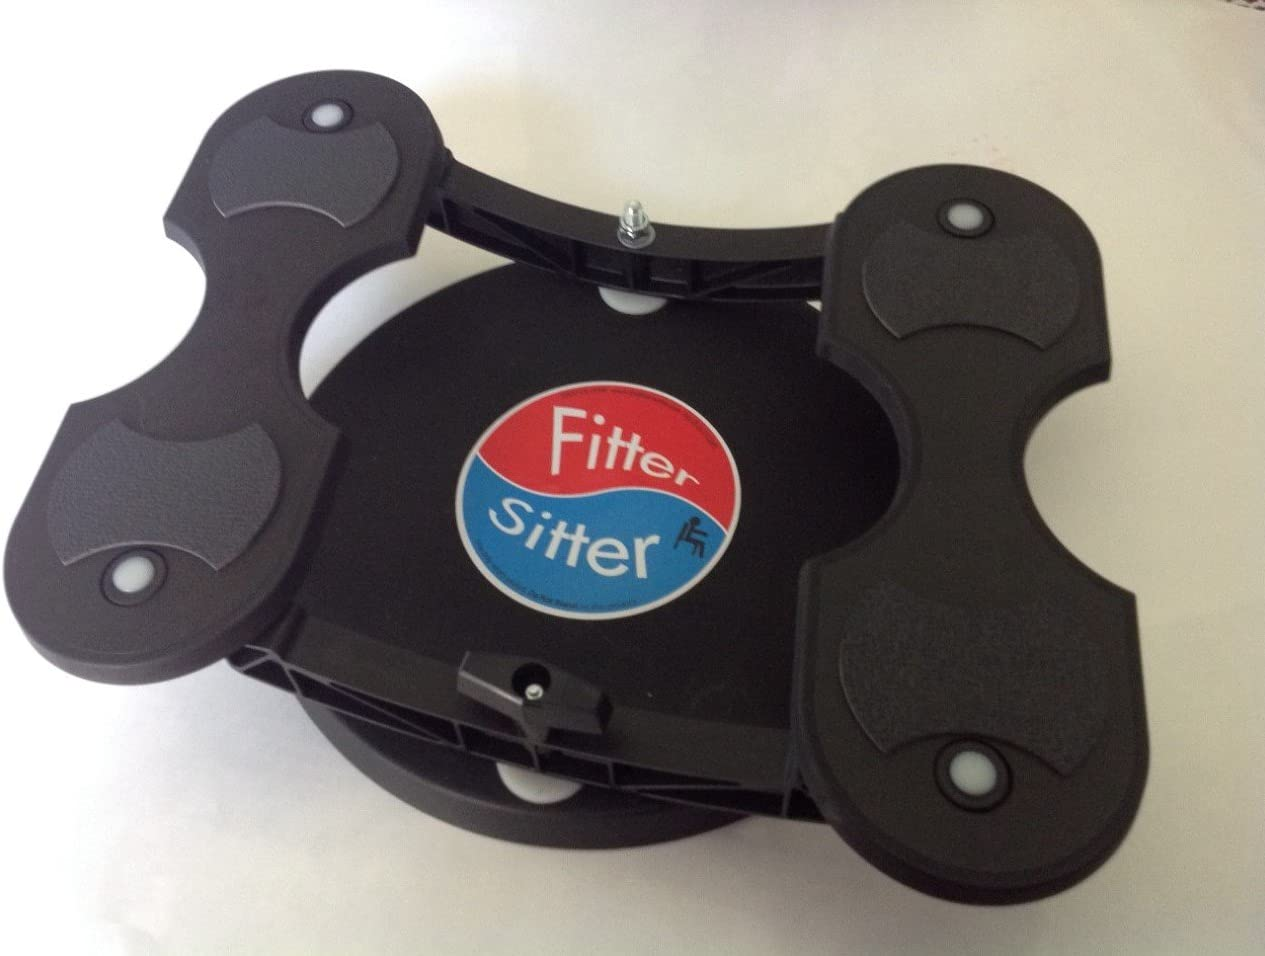 The Fitter Sitter: Stop Being Sedentary. Under Desk Exerciser for Blood Circulation, Seated Physical Therapy Leg Exerciser. Great for Seniors, Adult Office Workers, ADHD Fidget. Ergonomic Foot Rest.